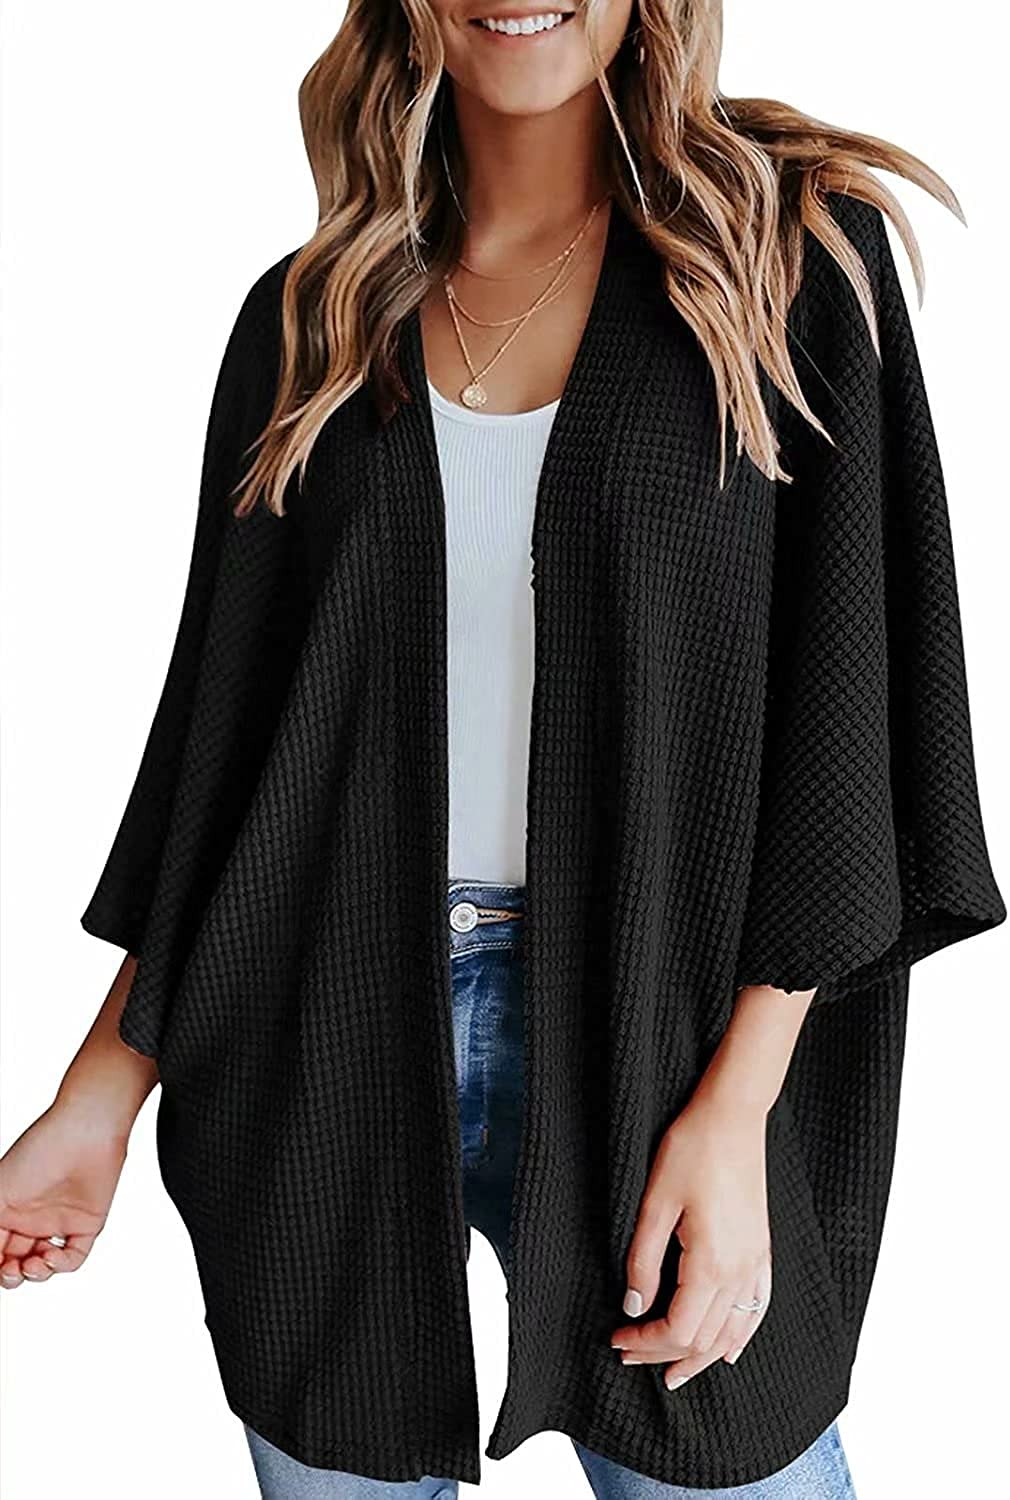 SUPRELOOK Women's Lightweight Kimono Cardigans 3/4 Sleeve Long Waffle Knit Sweaters Shawls Loose Open Front Cover Up Tops